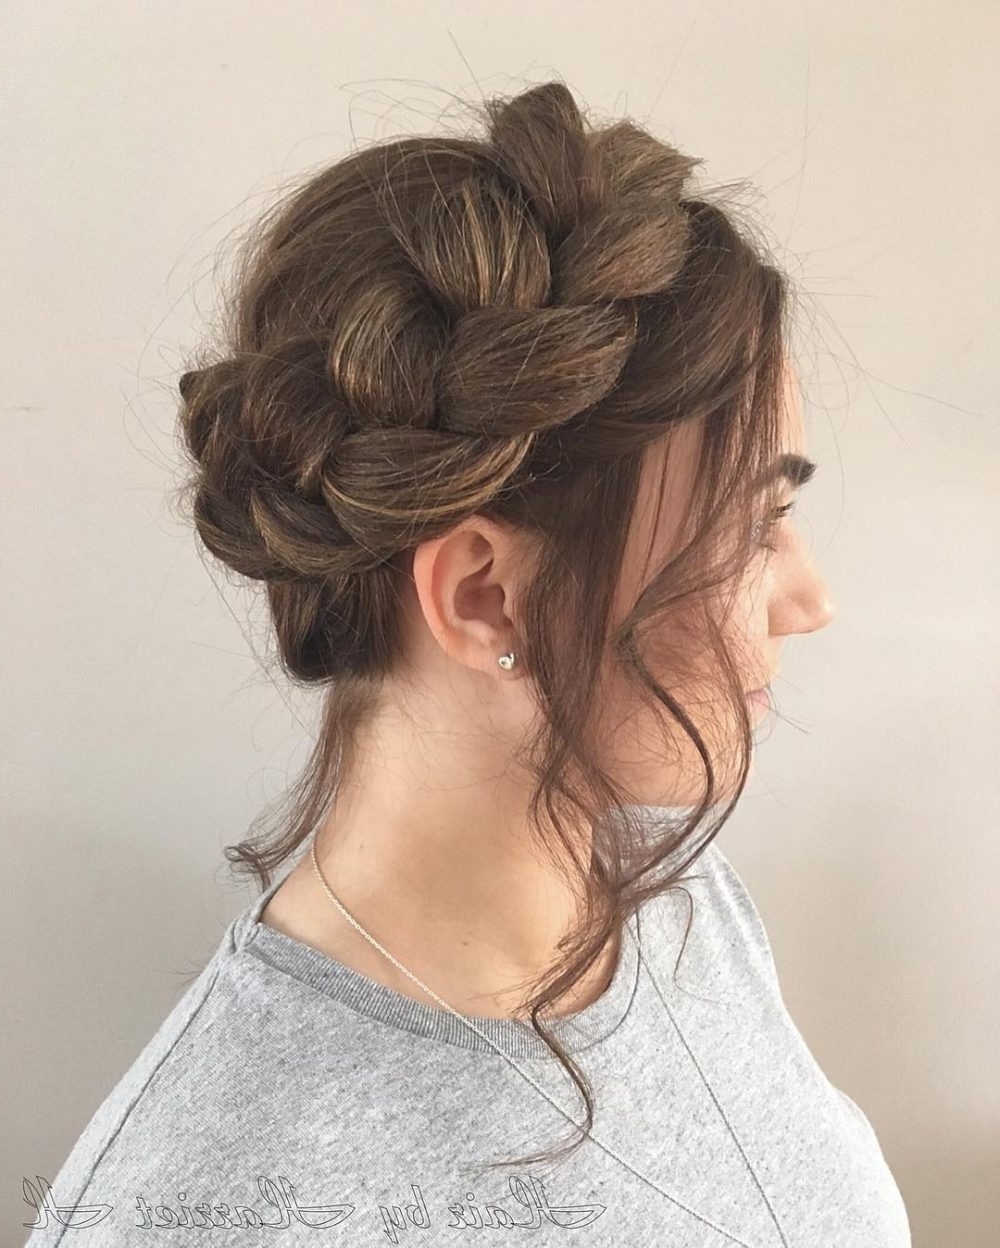 26 Gorgeous Braided Updos You Must Try Pertaining To Updo Braid Hairstyles (View 11 of 15)